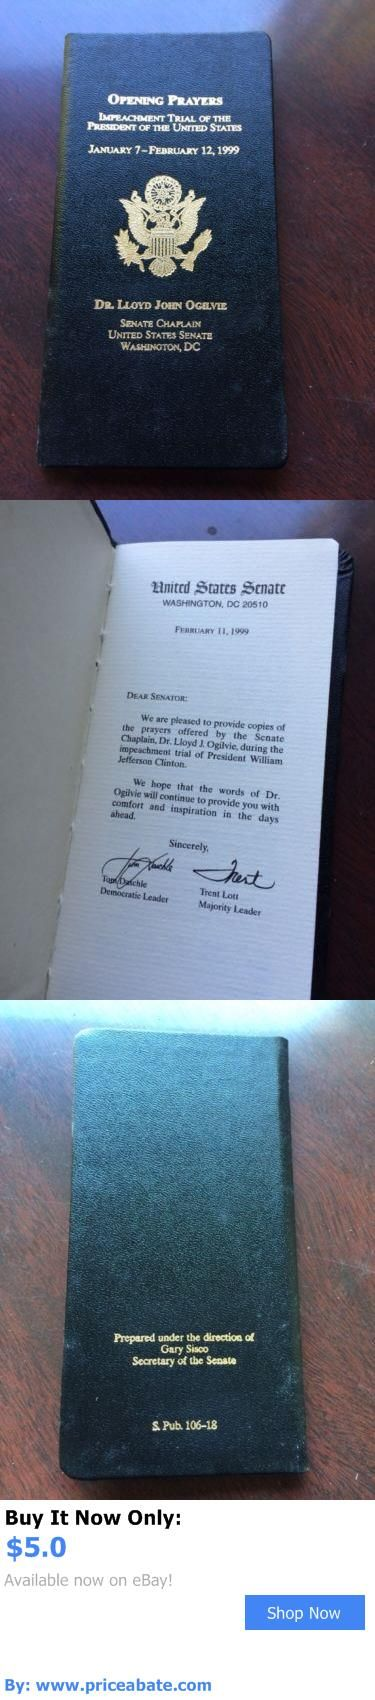 Bill Clinton: Limited Edition Opening Prayers Of The Impeachment Of Bill Clinton BUY IT NOW ONLY: $5.0 #priceabateBillClinton OR #priceabate